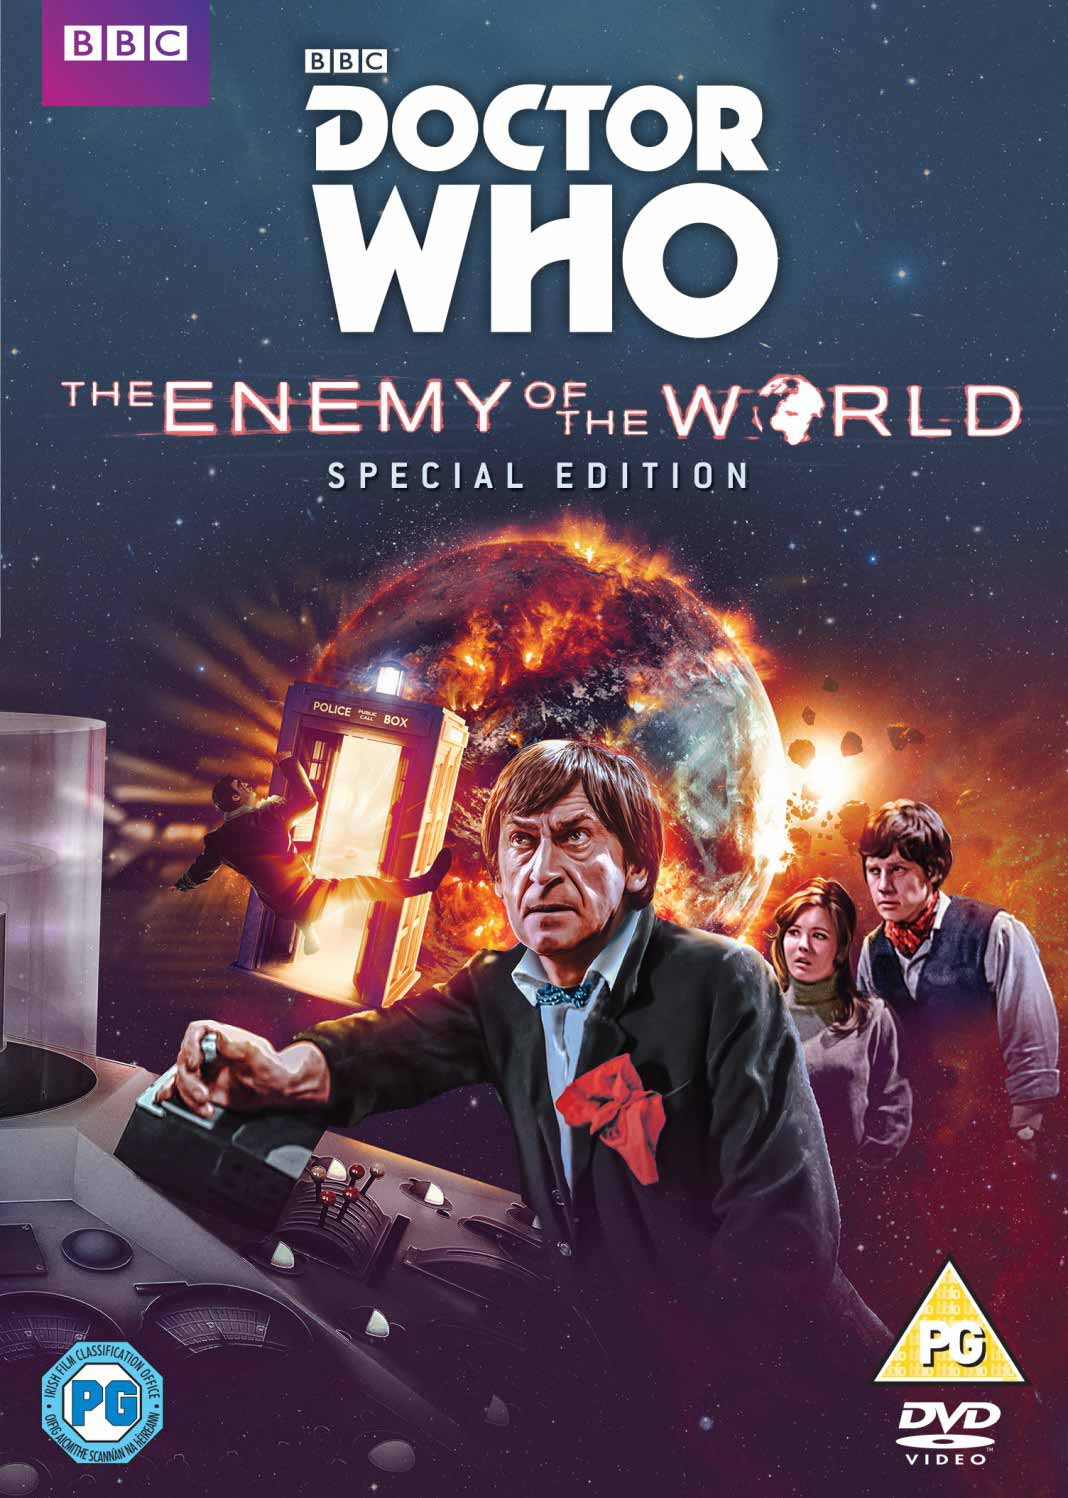 Doctor Who - The Enemy of the World Special Edition DVD